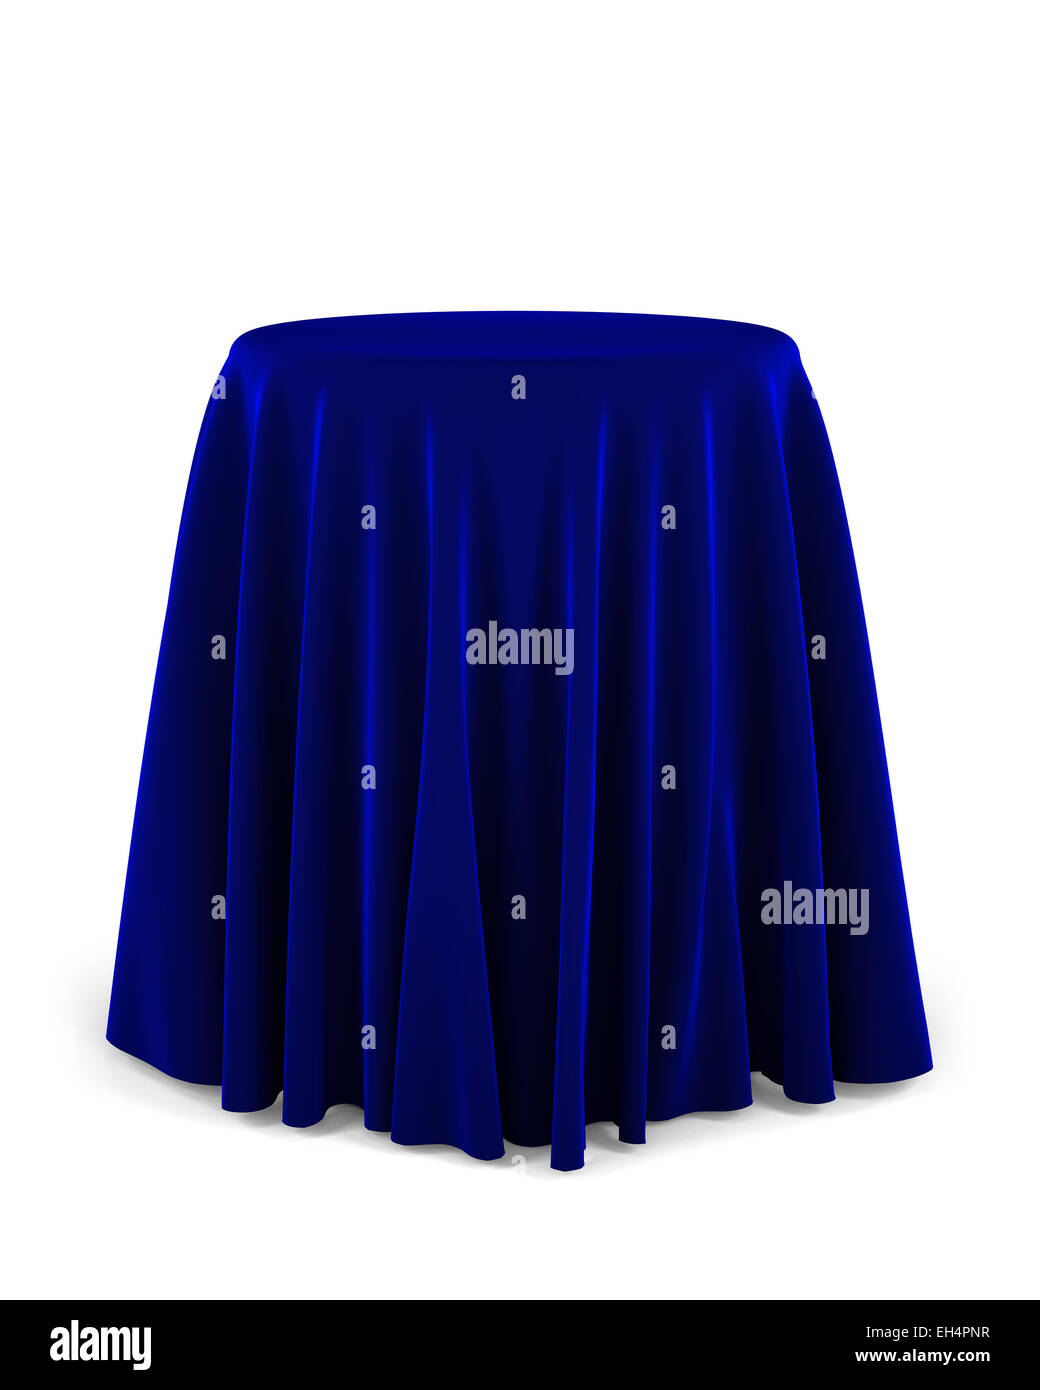 Round presentation pedestal covered with a blue cloth - Stock Image